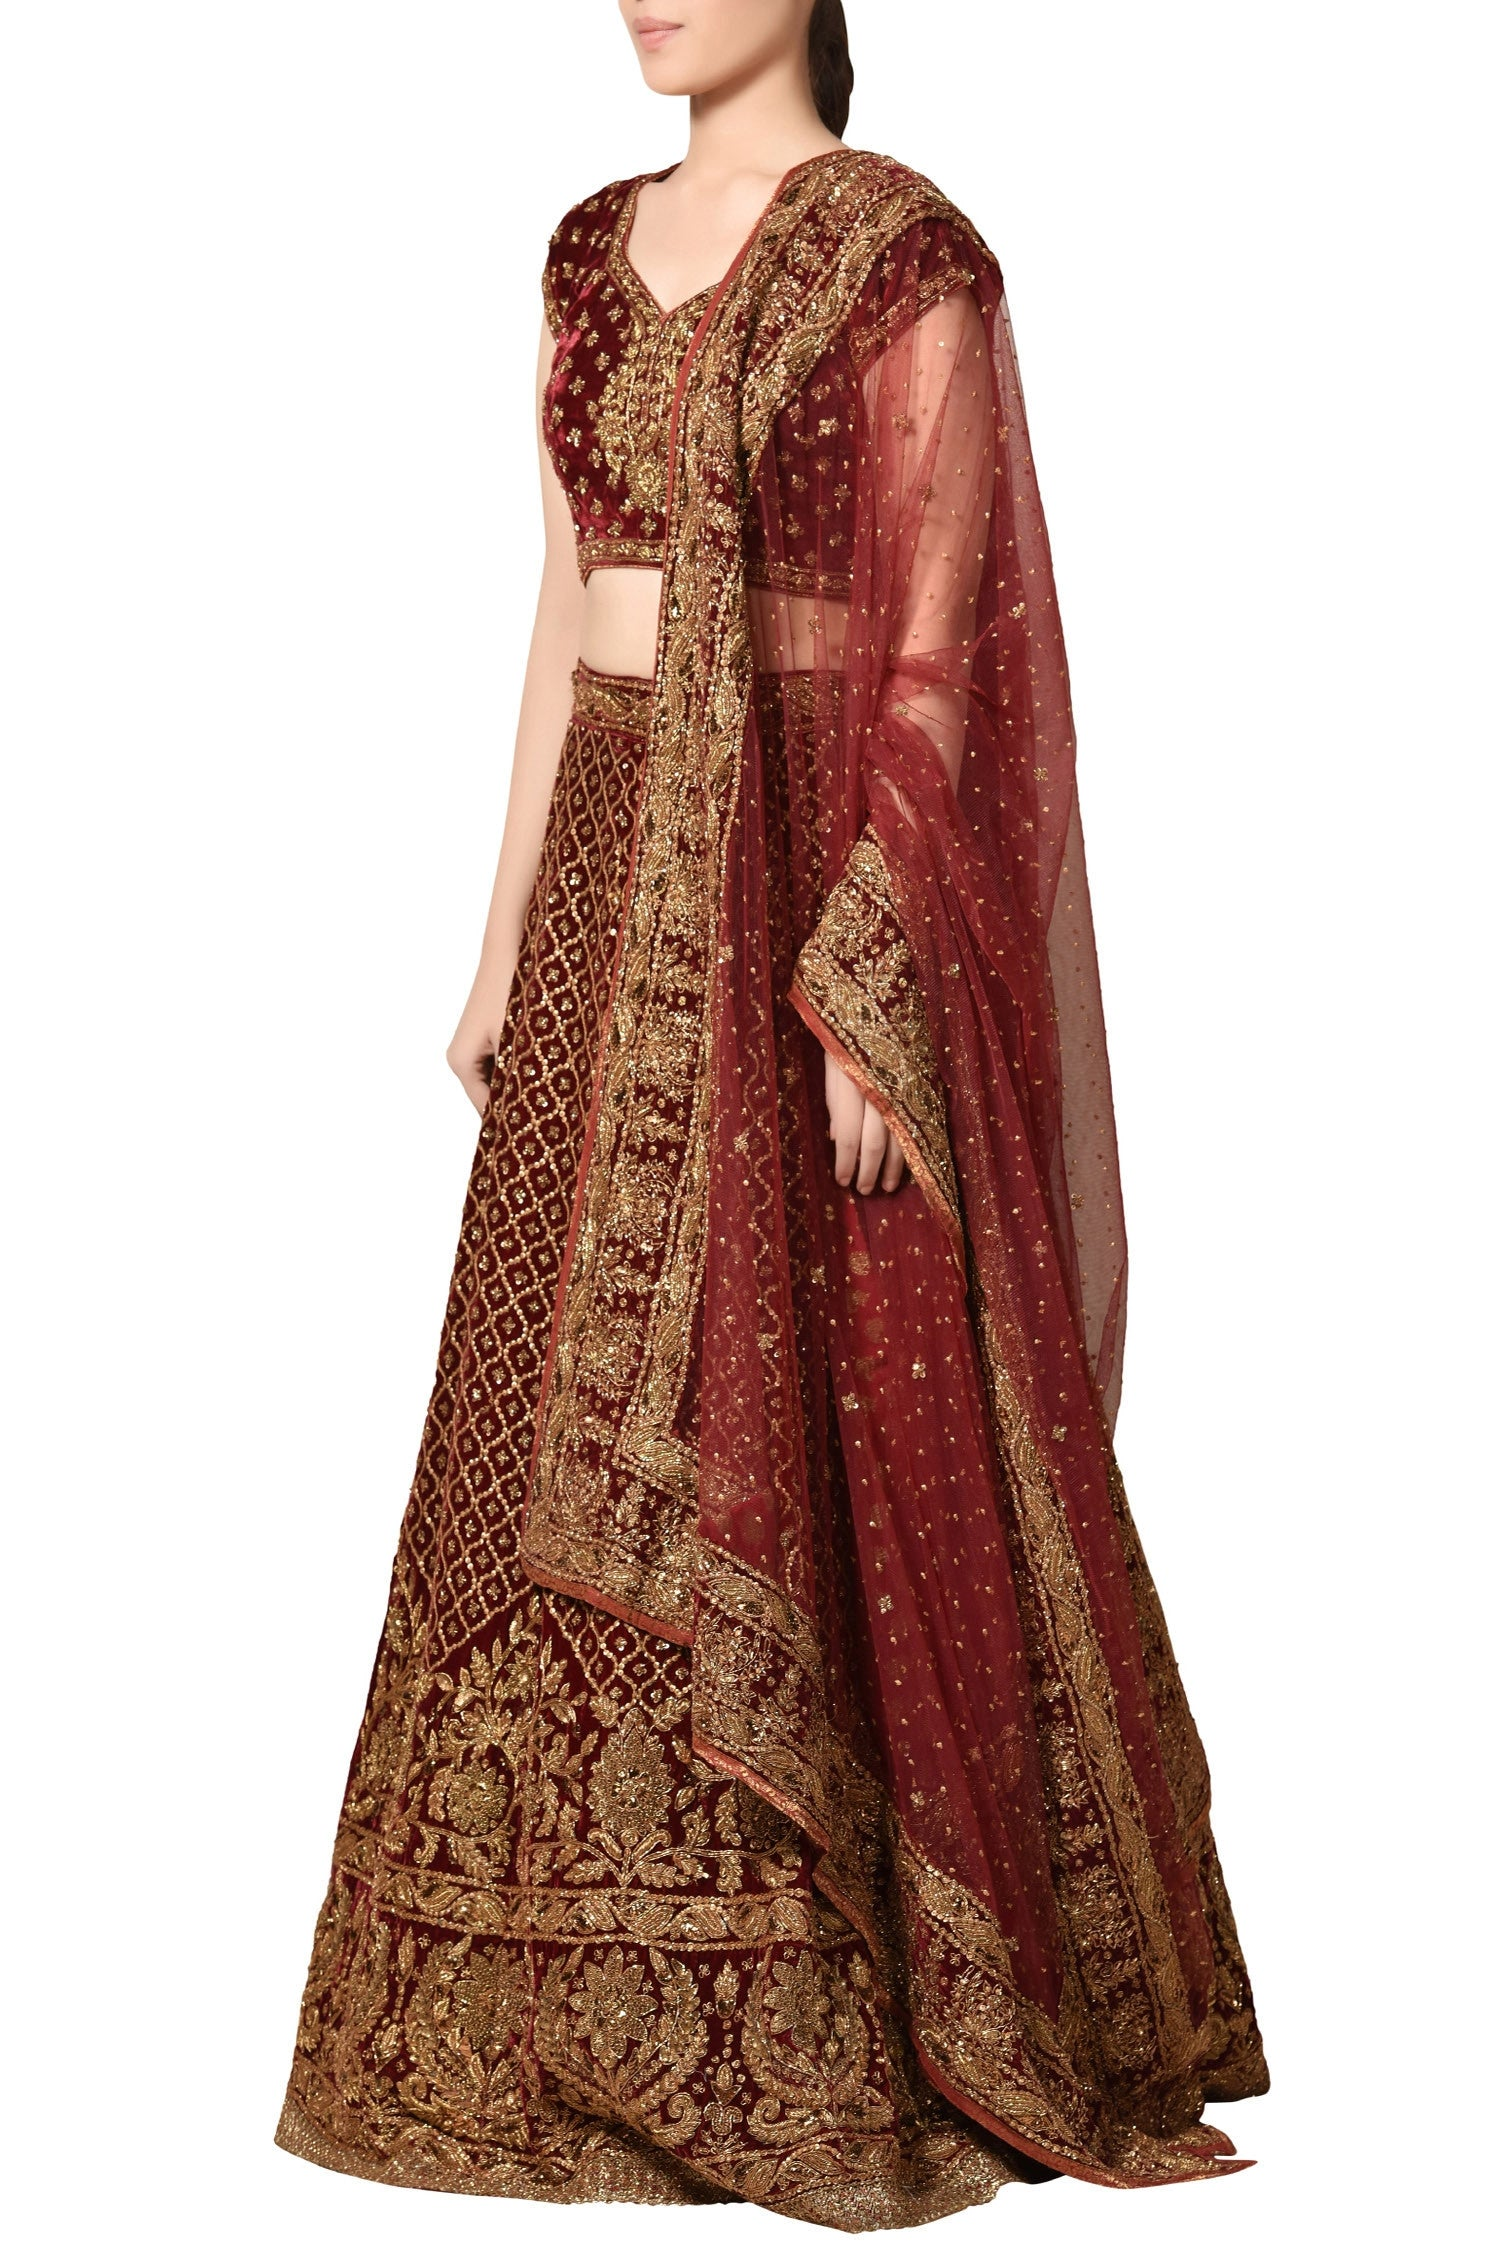 Burgandy Colour Wedding Lehenga